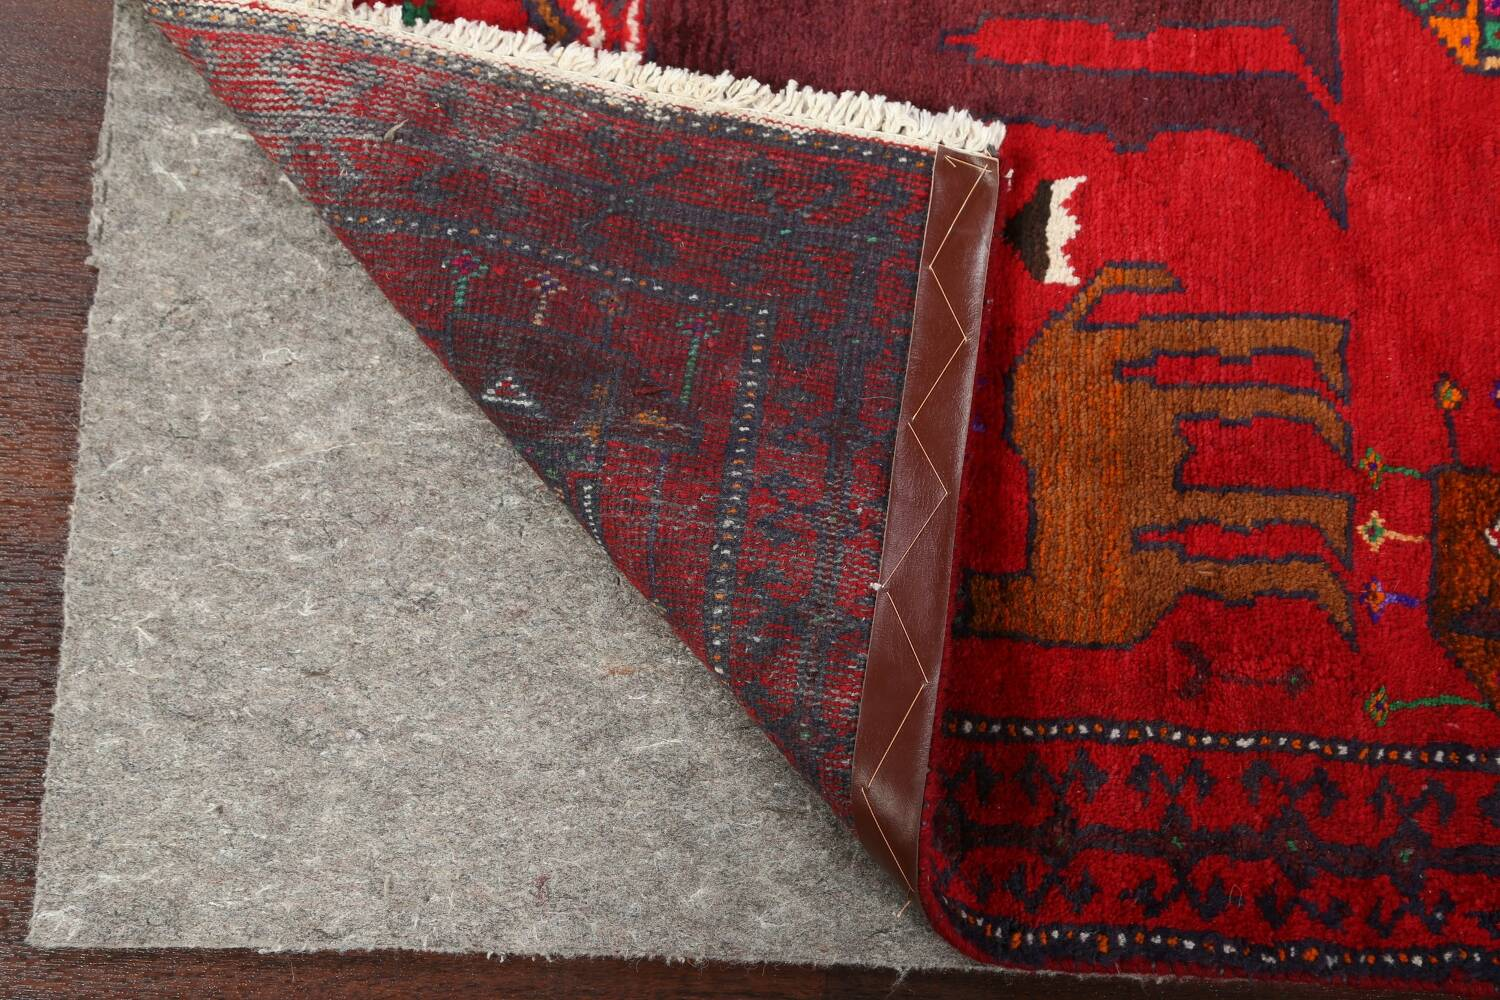 Animal Pictorial Balouch Persian Area Rug 4x8 image 7